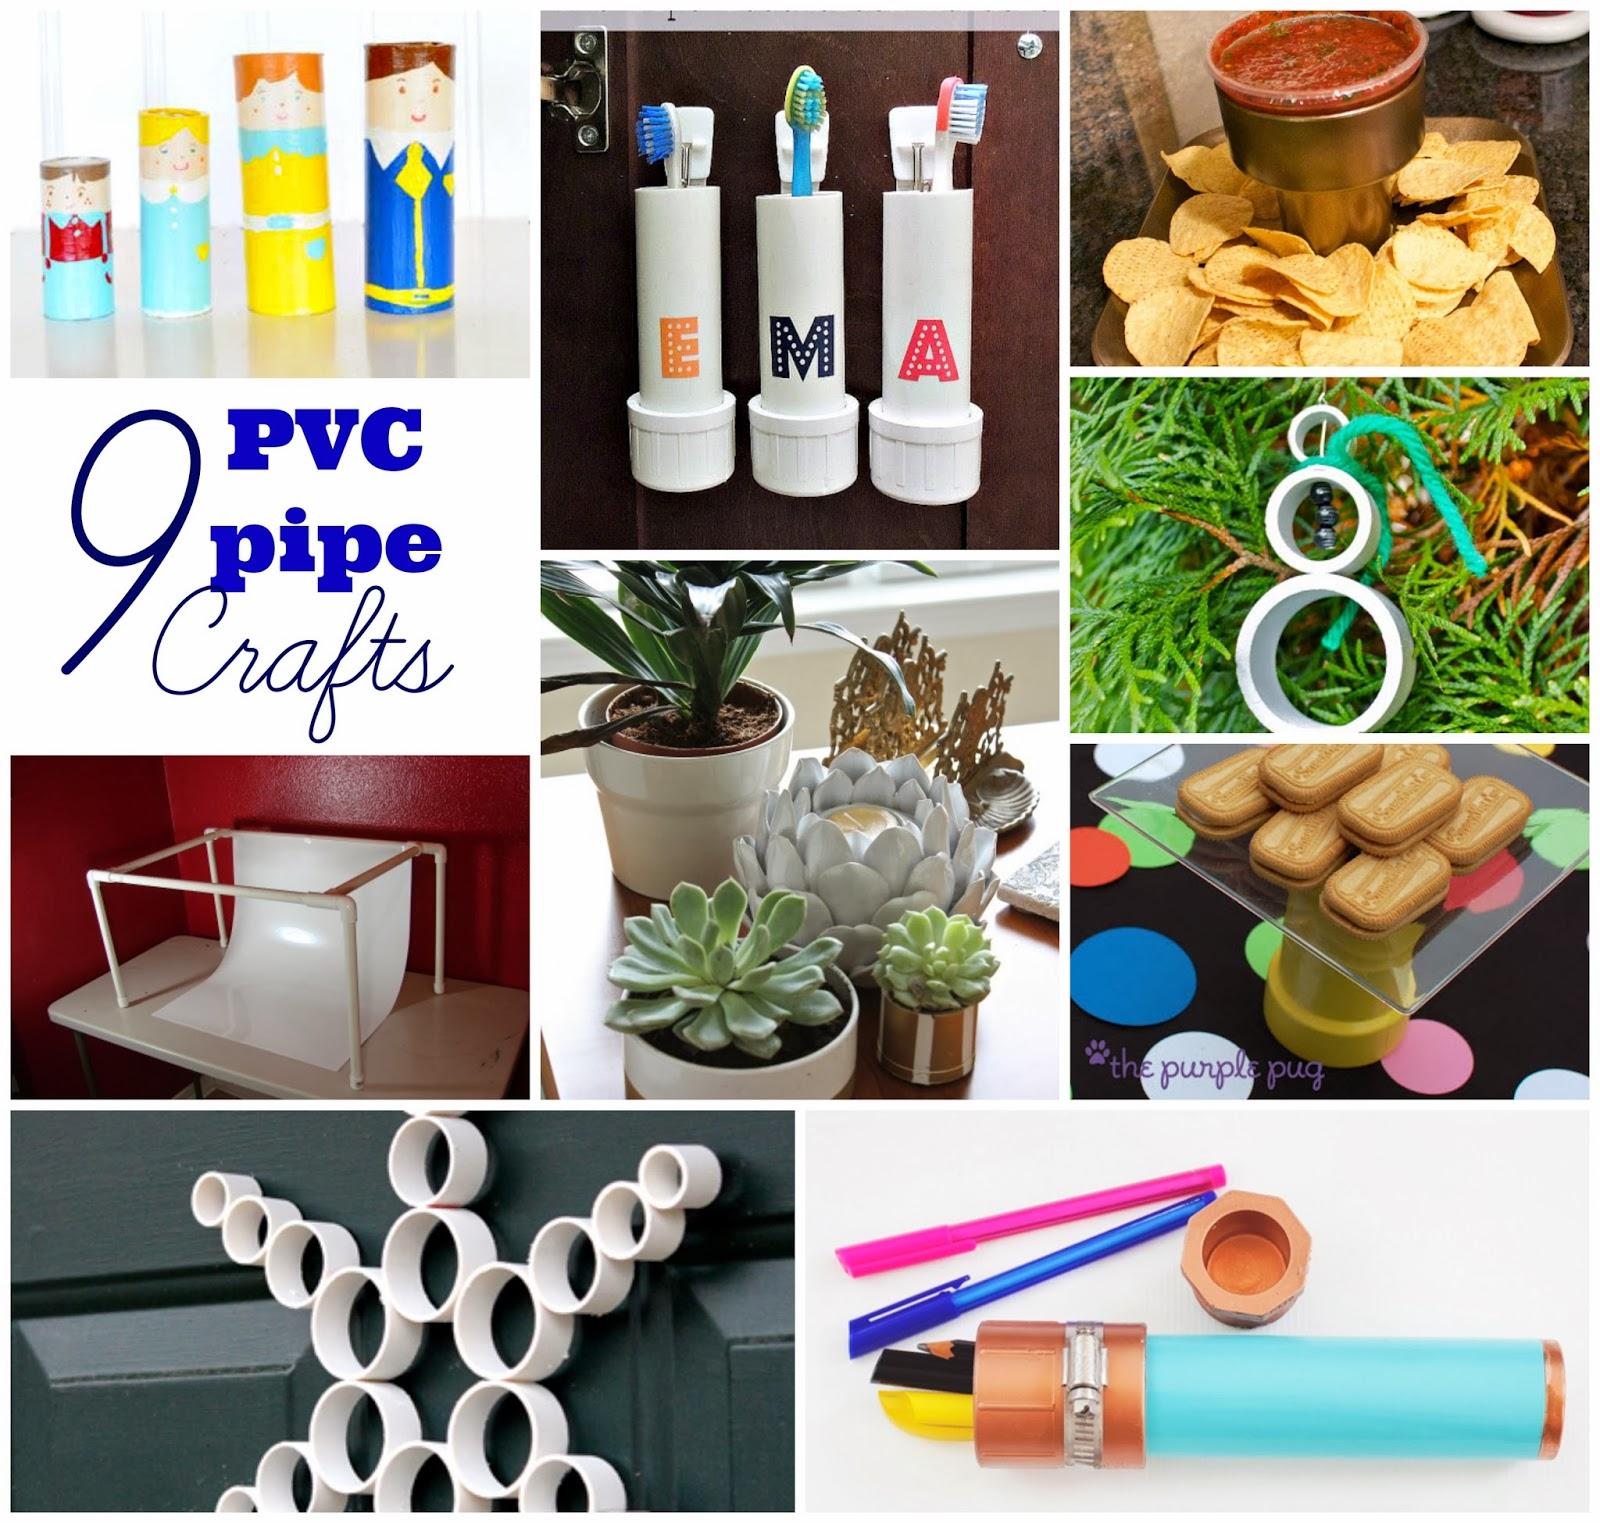 Sowdering about pvc pipe craft roundup for Pvc crafts